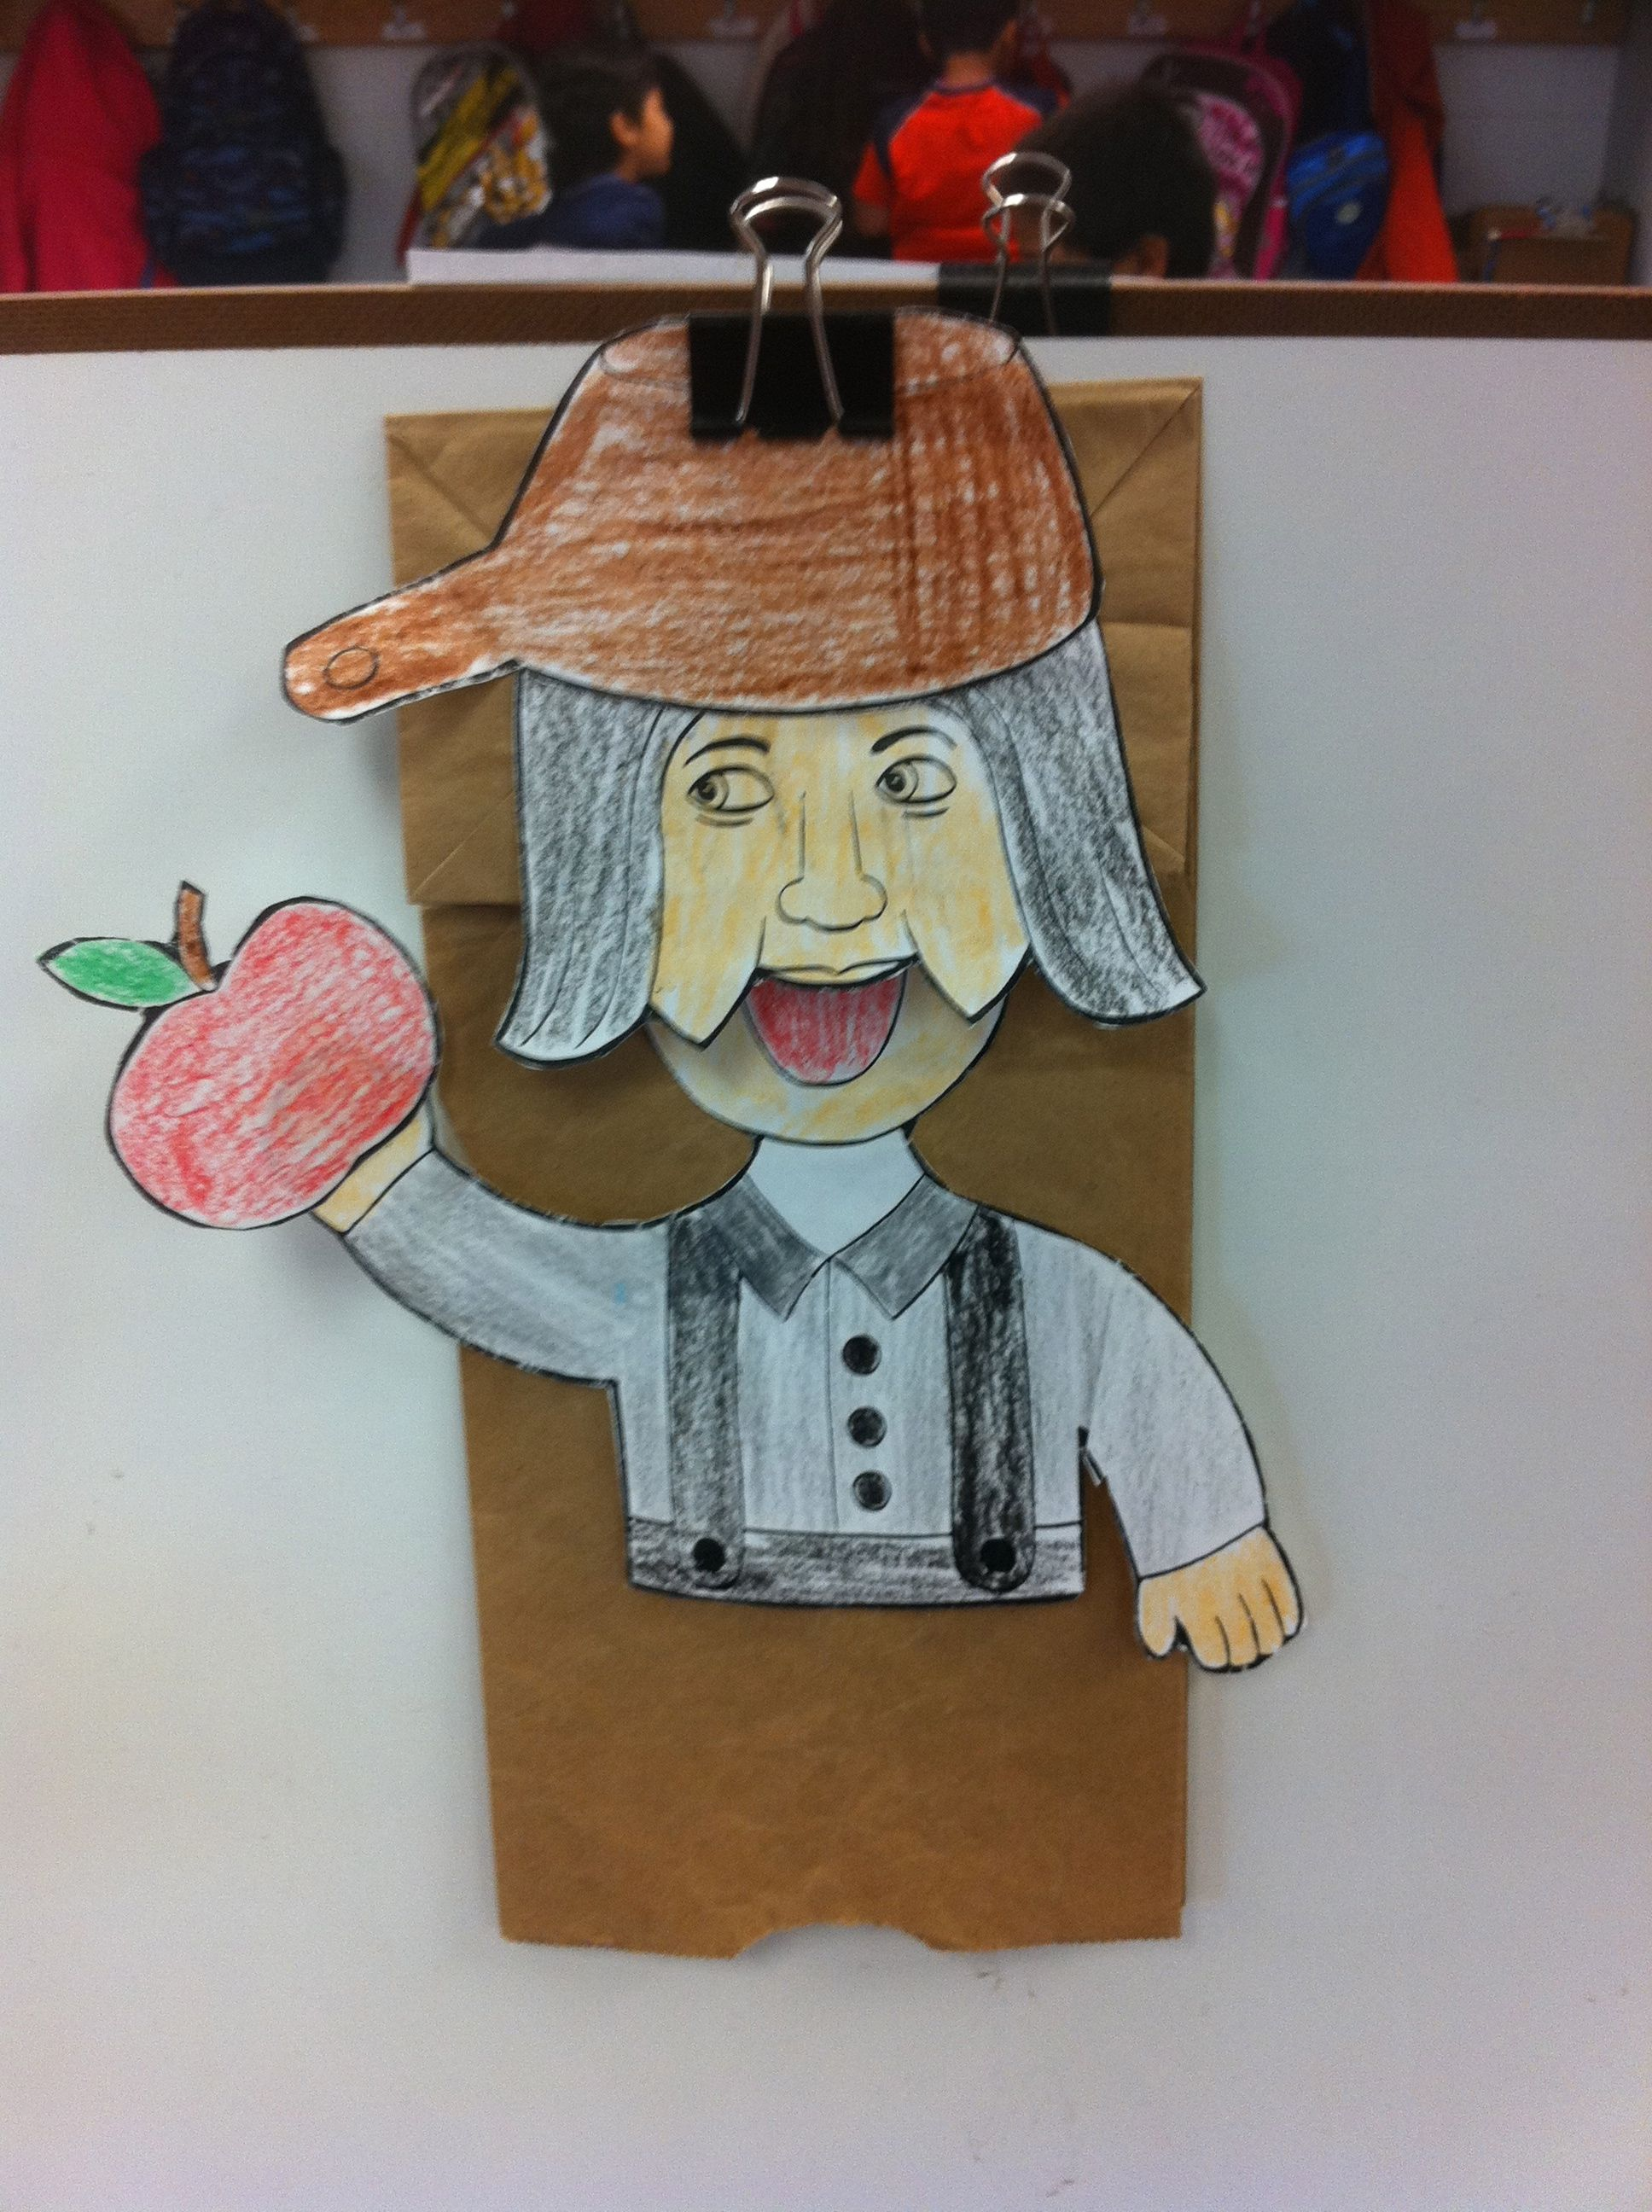 Most Disturbing Johnny Appleseed Ever Found In A